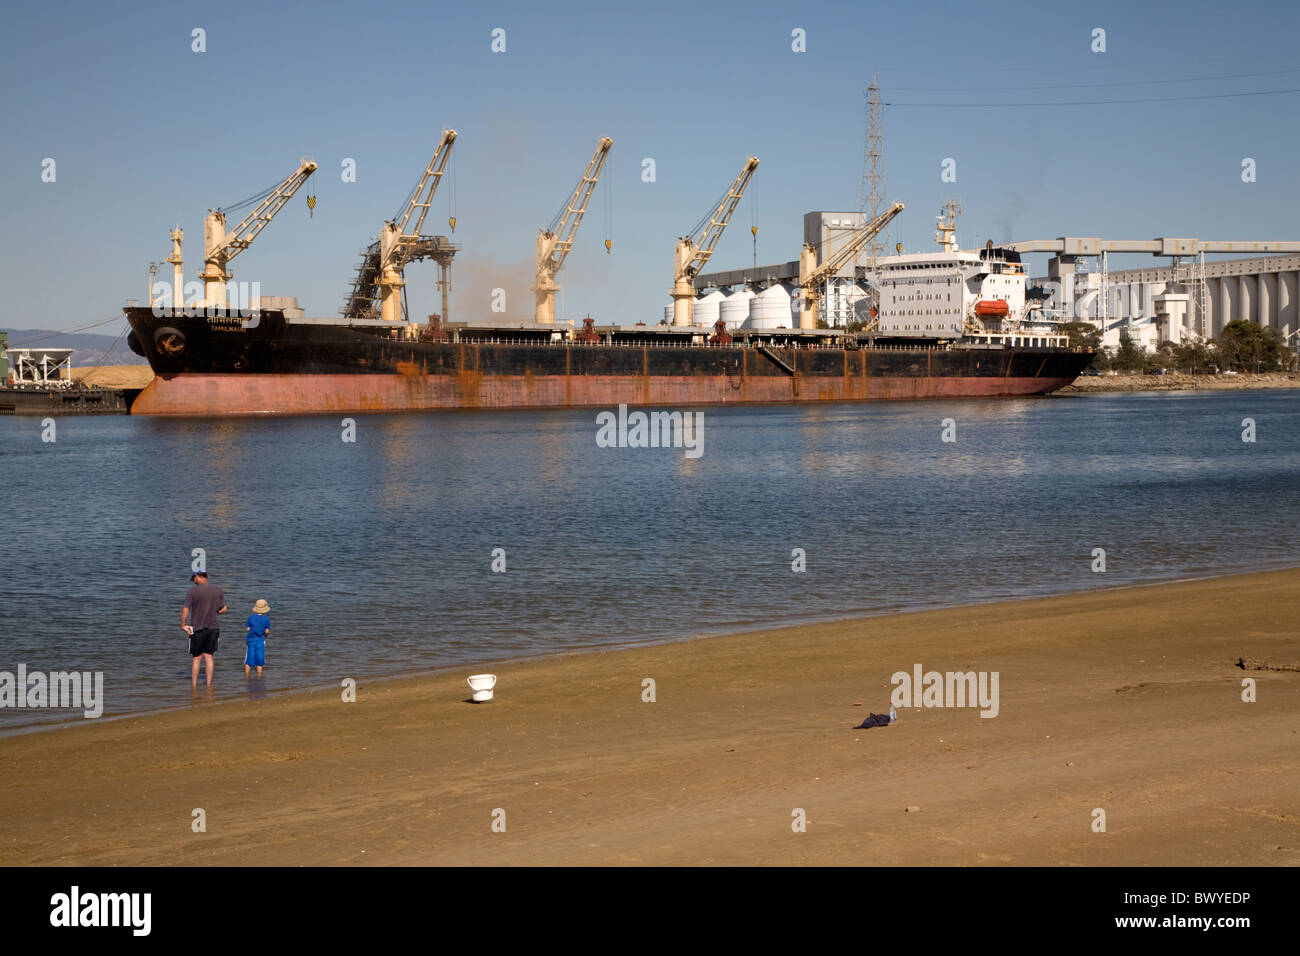 Cargo ship Being Loaded Port Adelaide Australia Stock Photo